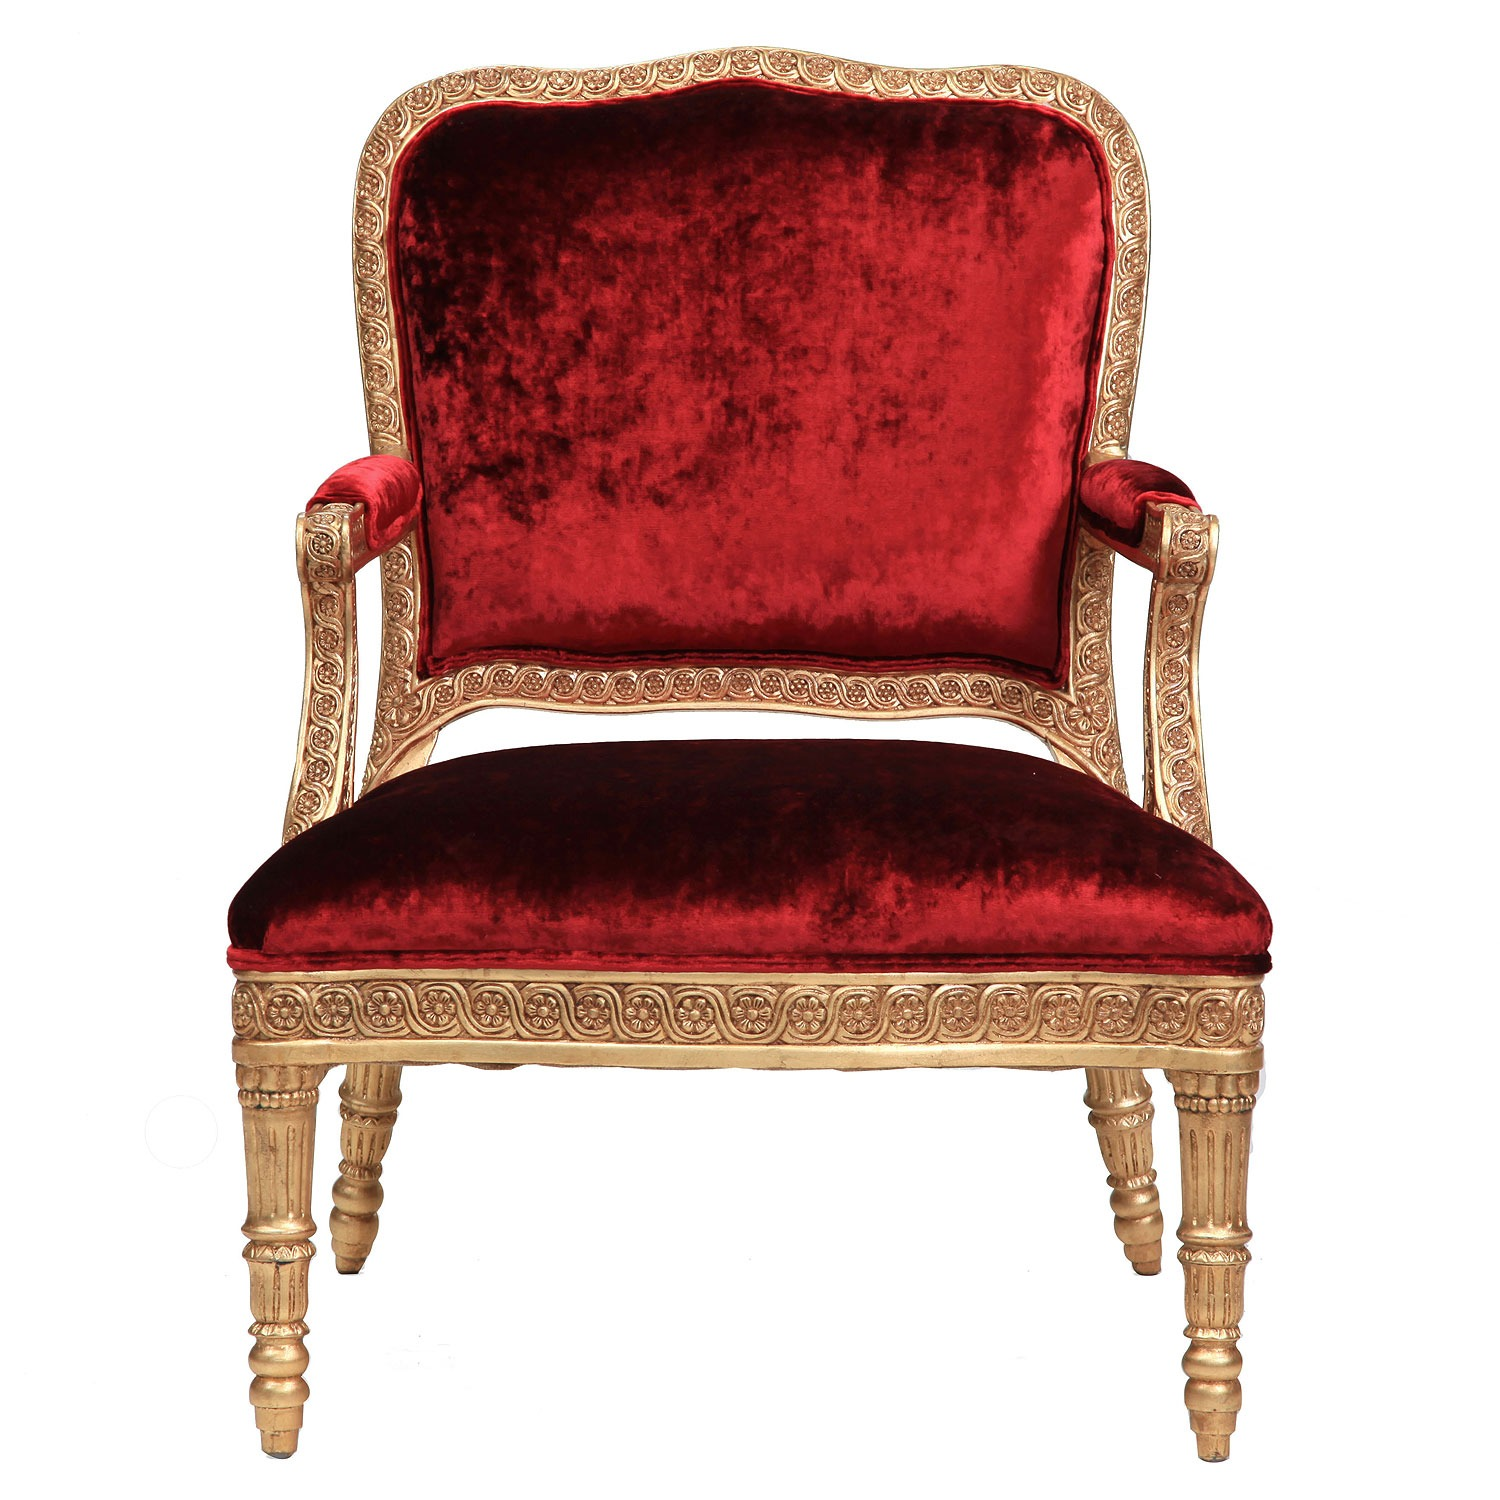 James giltwood chair in red crushed velvet